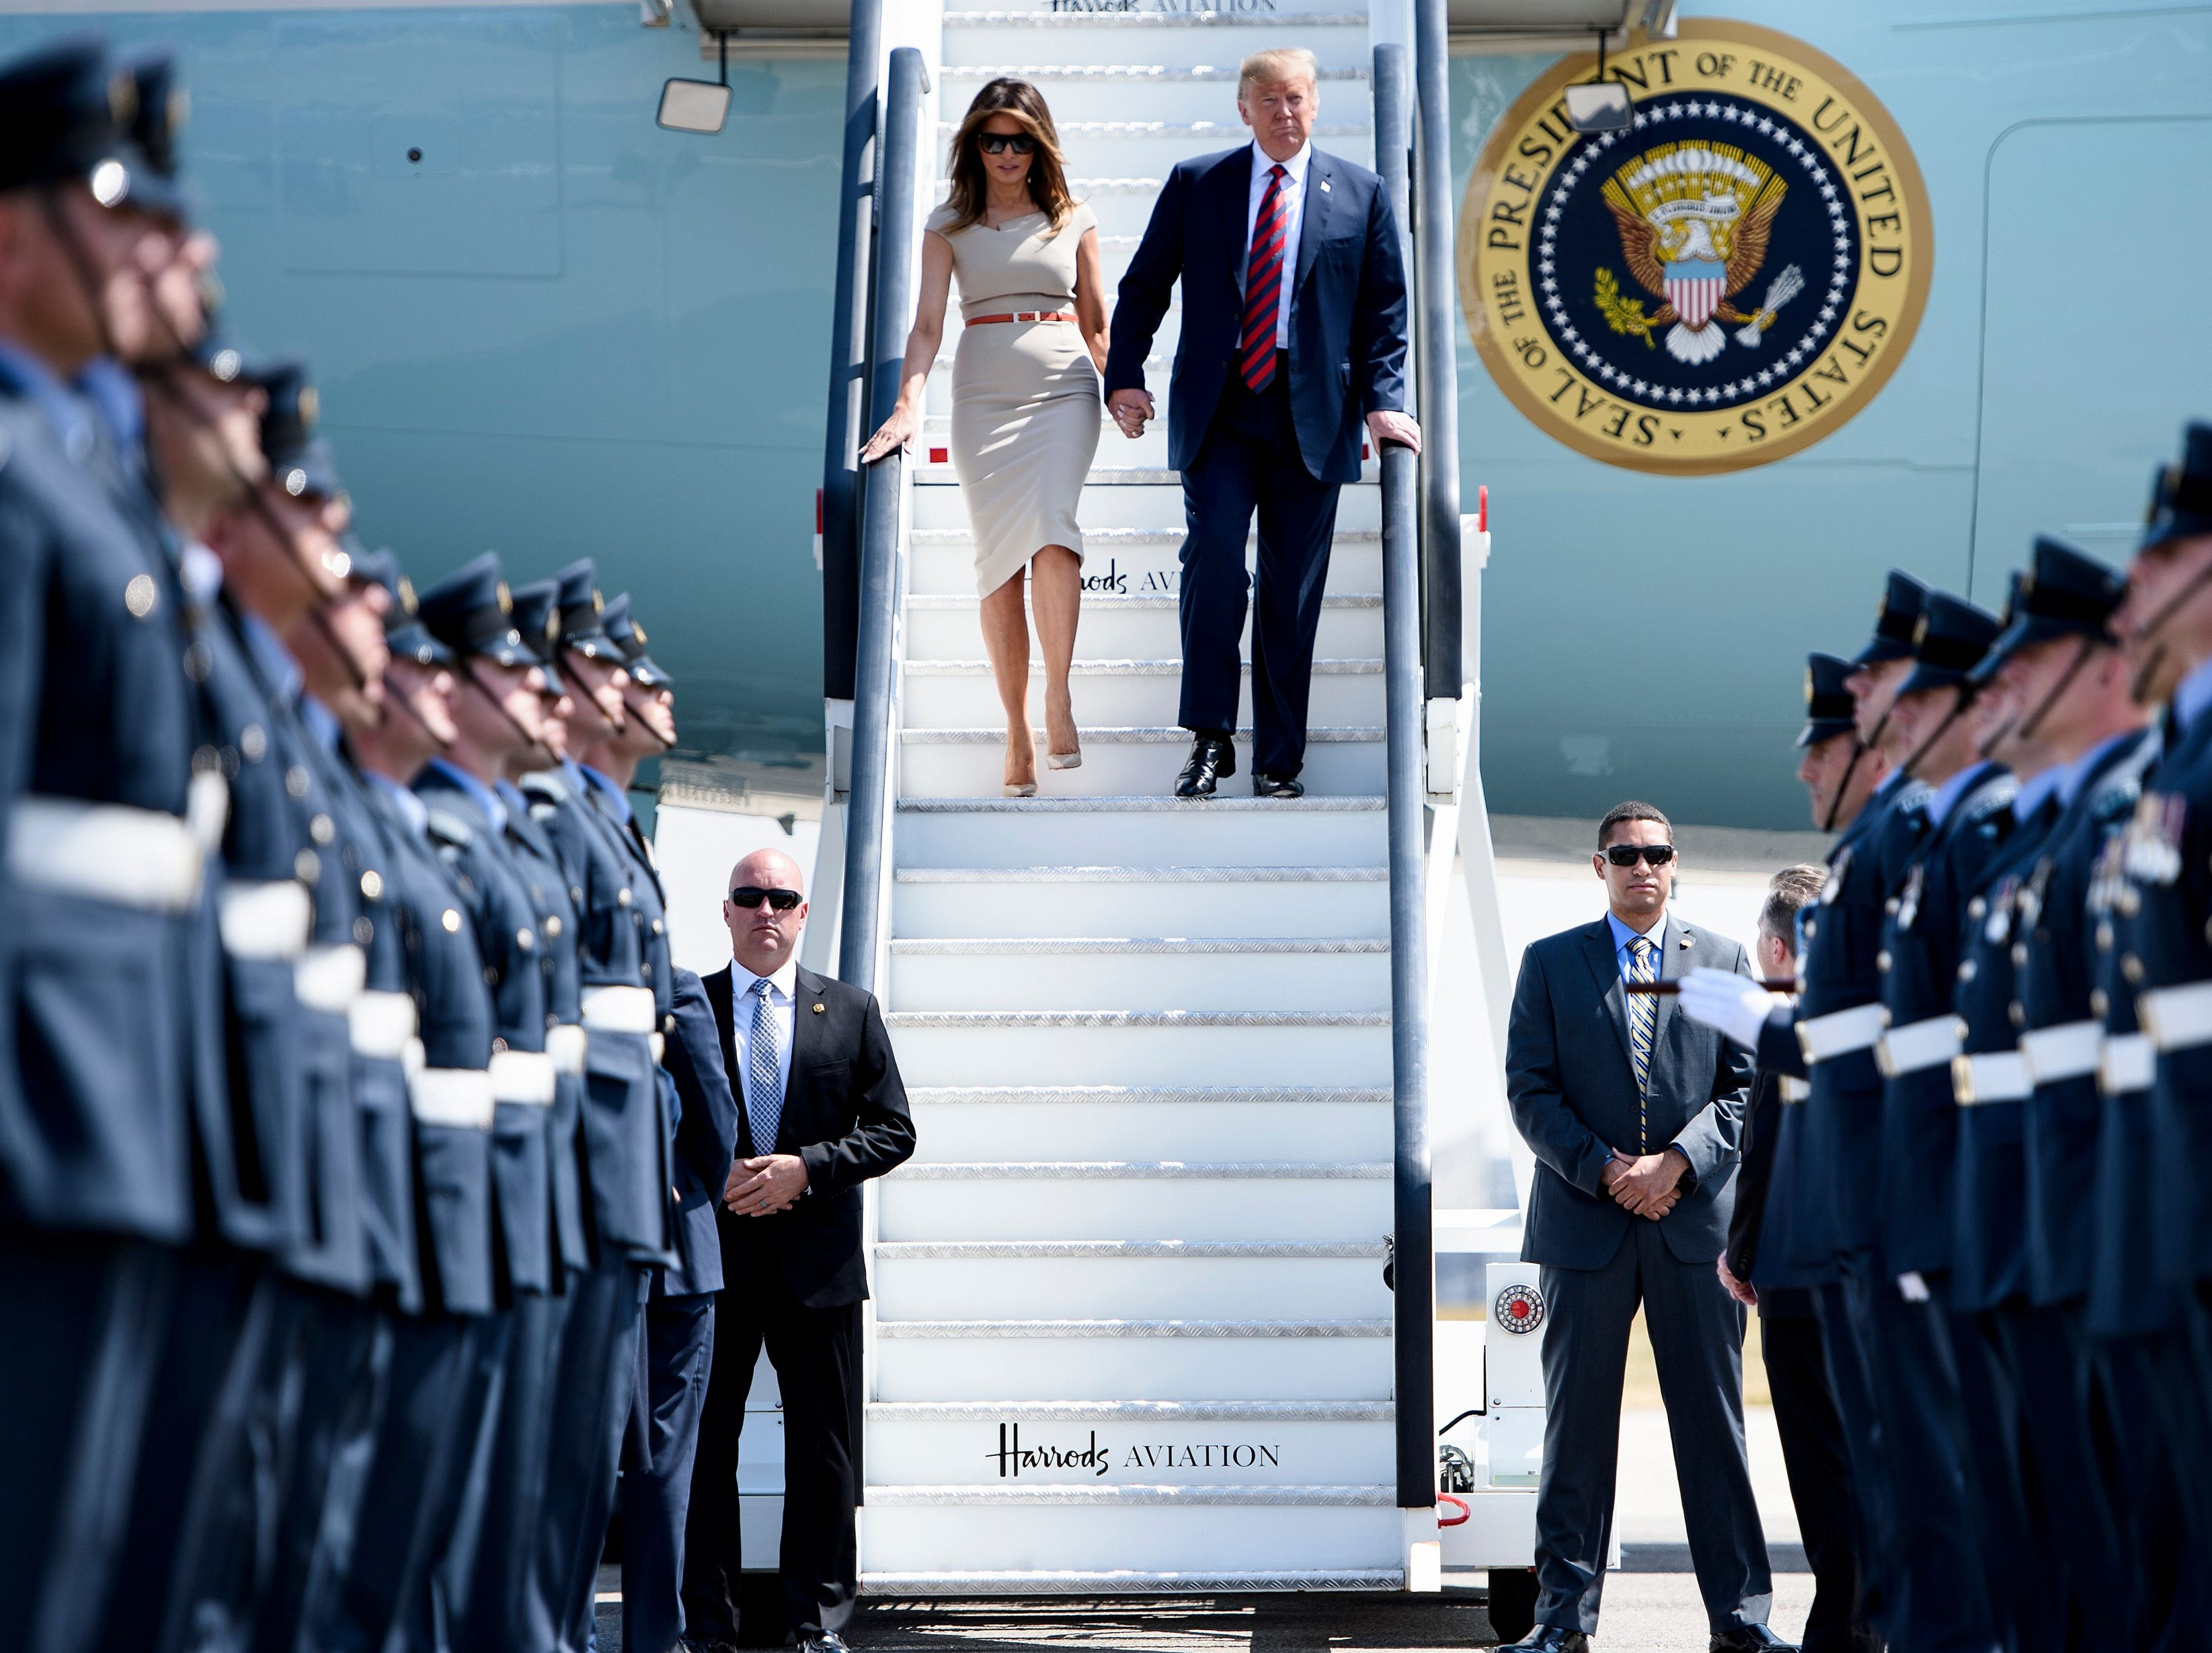 President Trump and First Lady Melania Trump disembark Air Force One at Stansted Airport, north of London on July 12, 2018, as he begins his first visit to the United Kingdom as president.